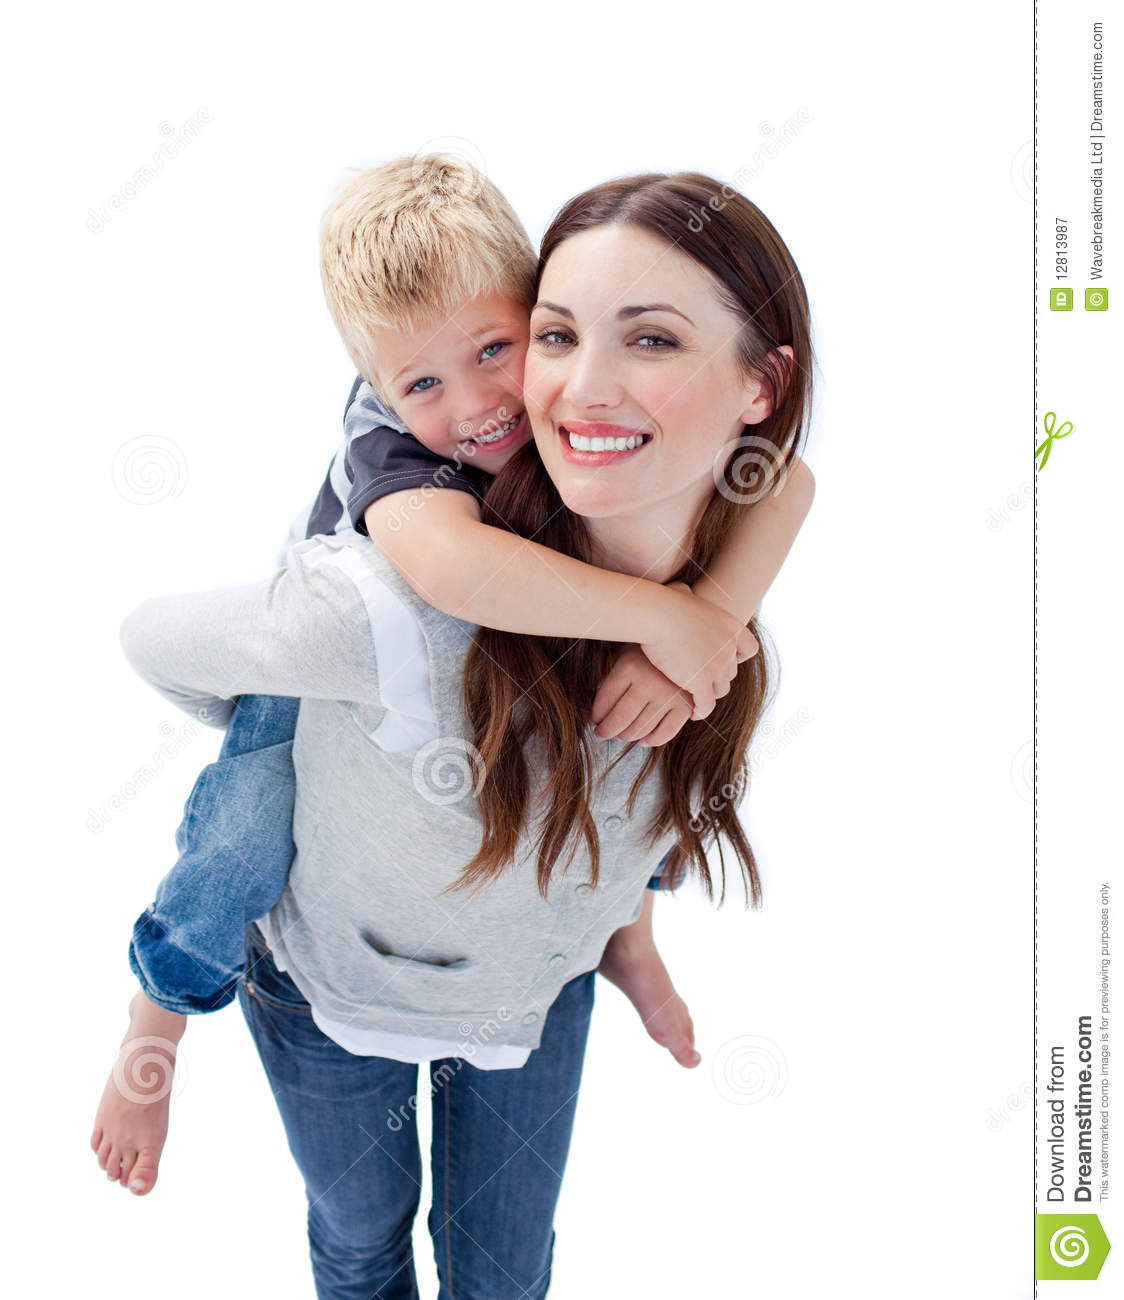 Smiling Mother Giving Her Son Piggyback Ride Stock Image